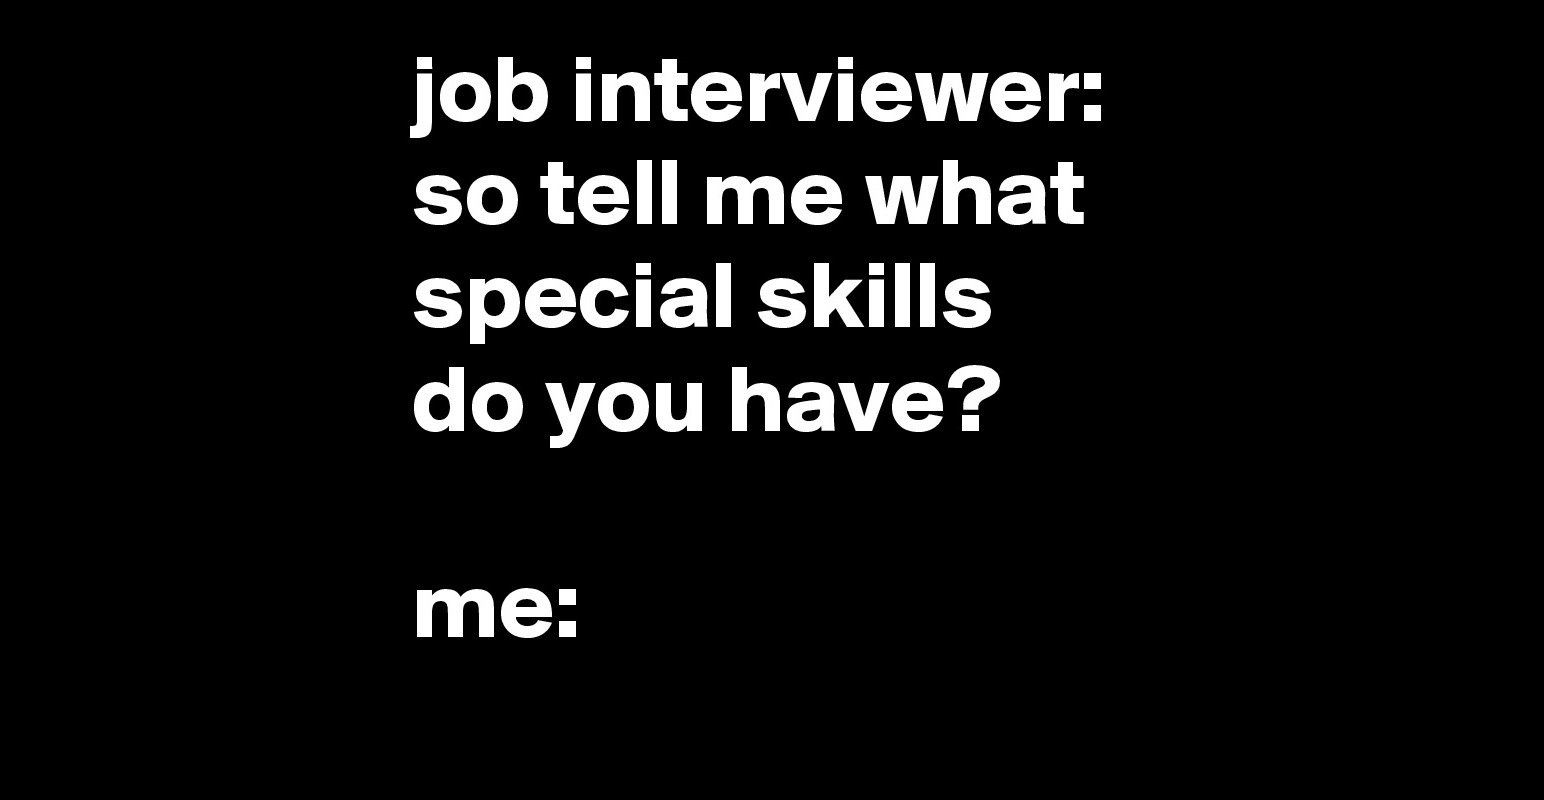 job interviewer so tell me what special skills do you have me job interviewer so tell me what special skills do you have me post by jaybyrd on boldomatic